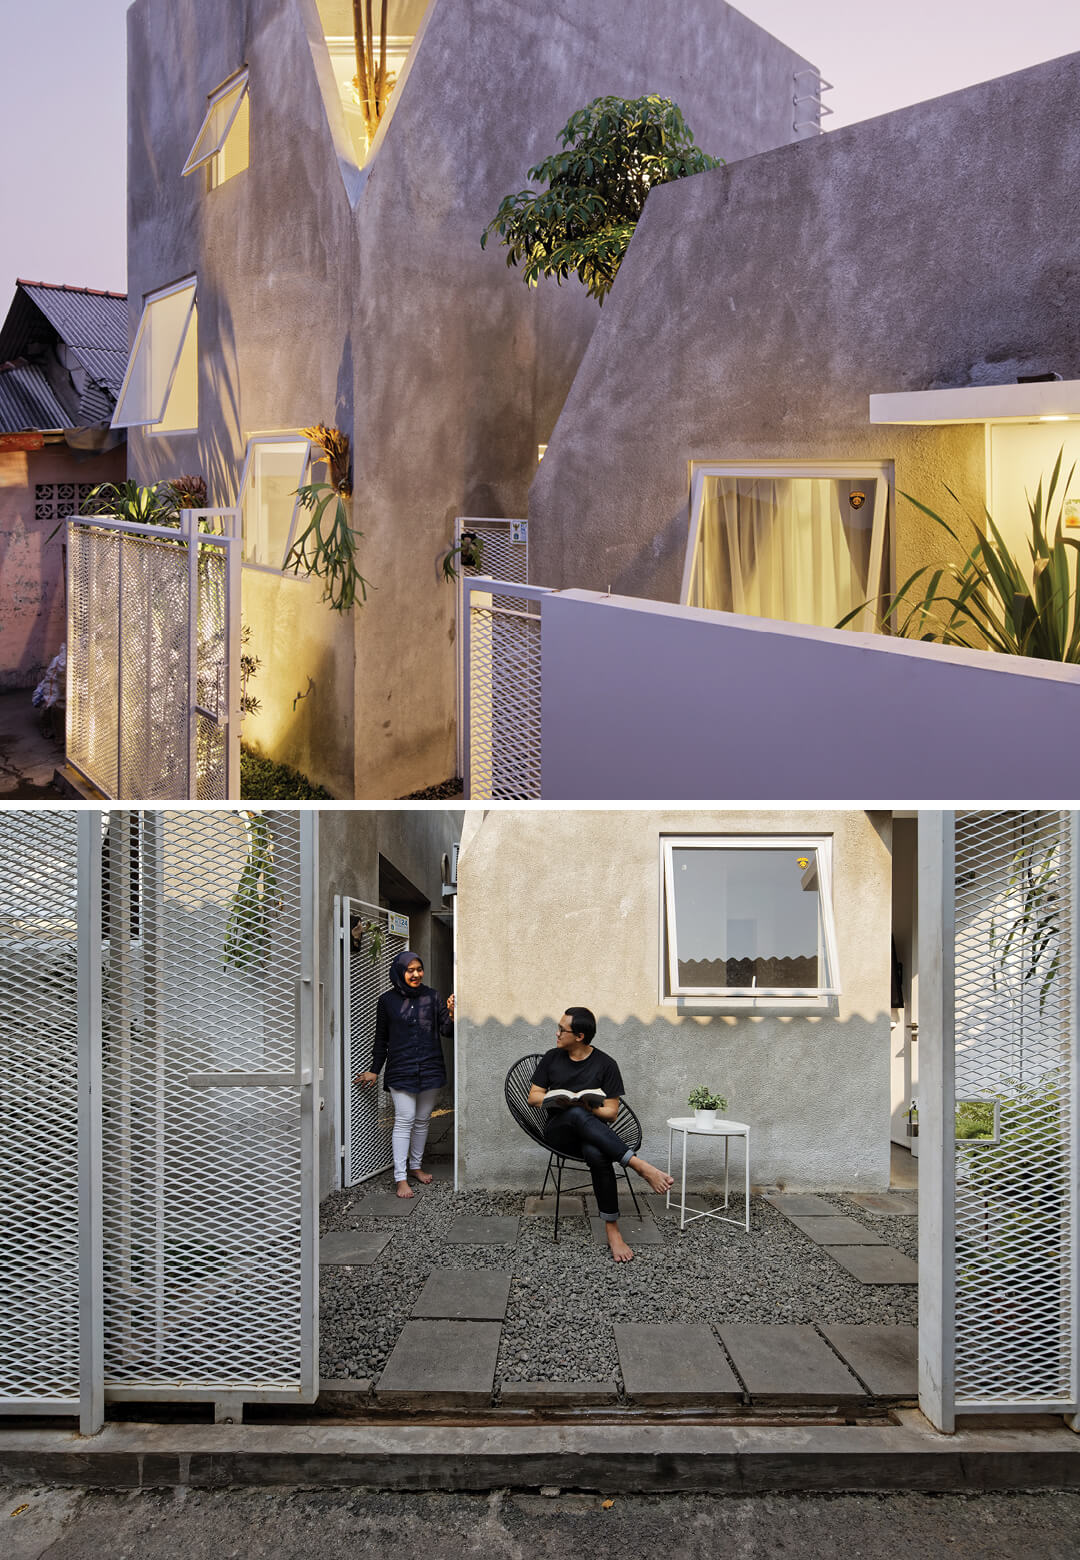 'The Twins' is a dual concrete residence located in a densely populated area in Jakarta | The Twins by DELUTION Architects | STIRworld